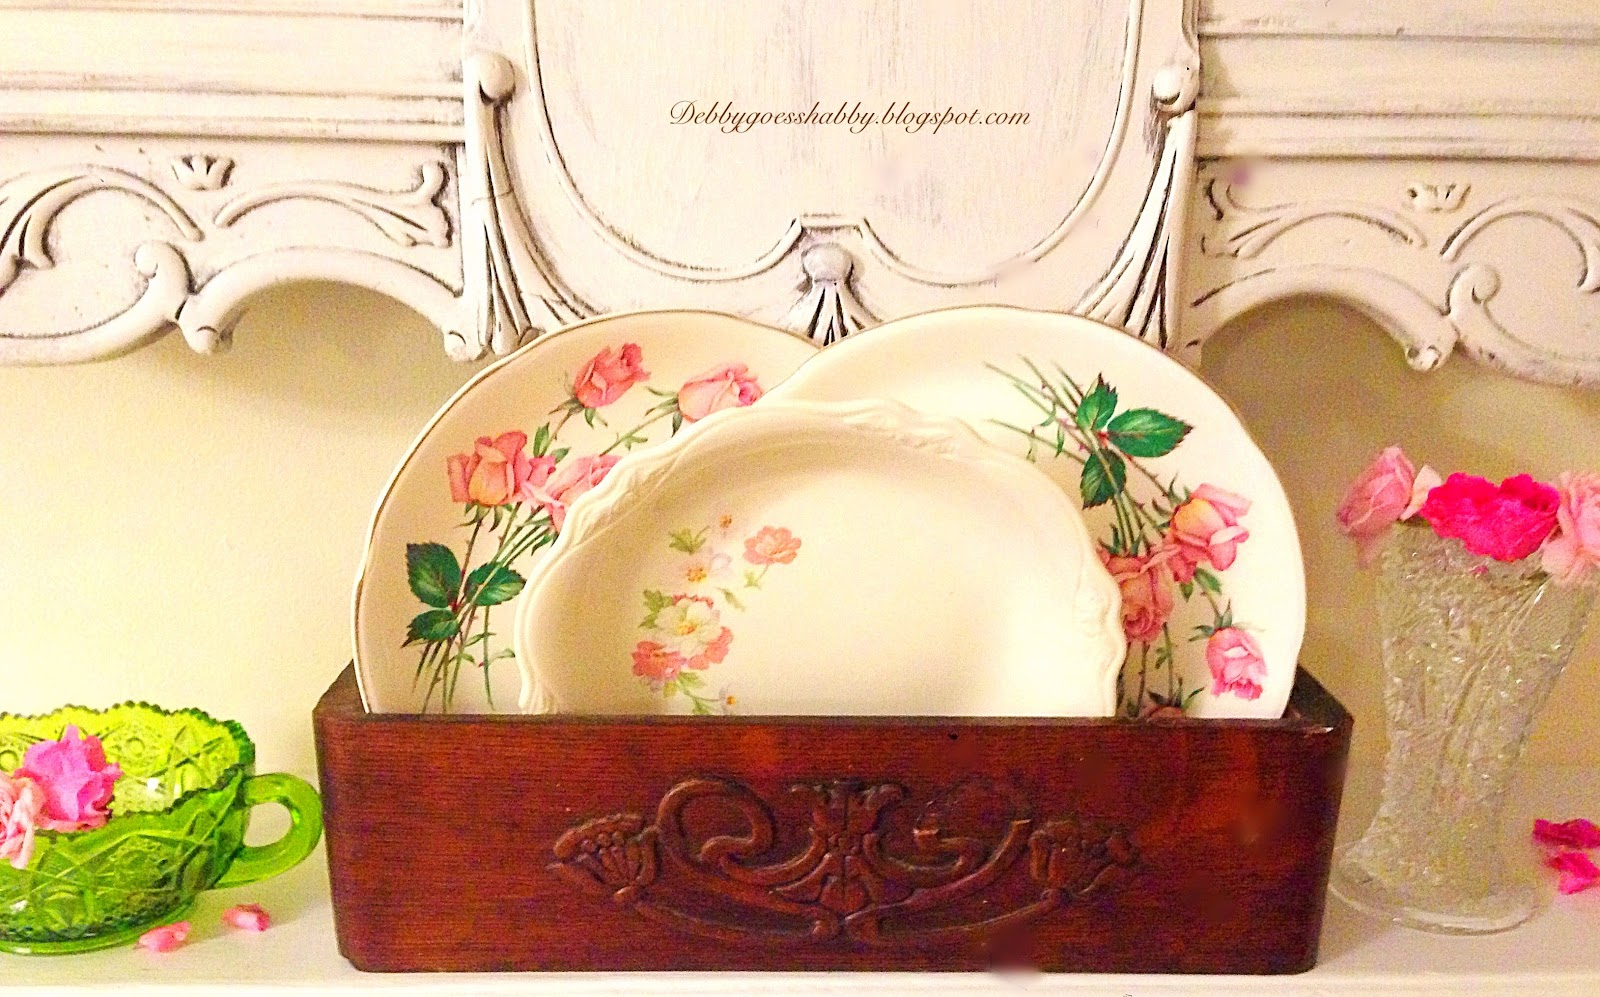 friday goodwill find beautiful simple things debby goes shabby